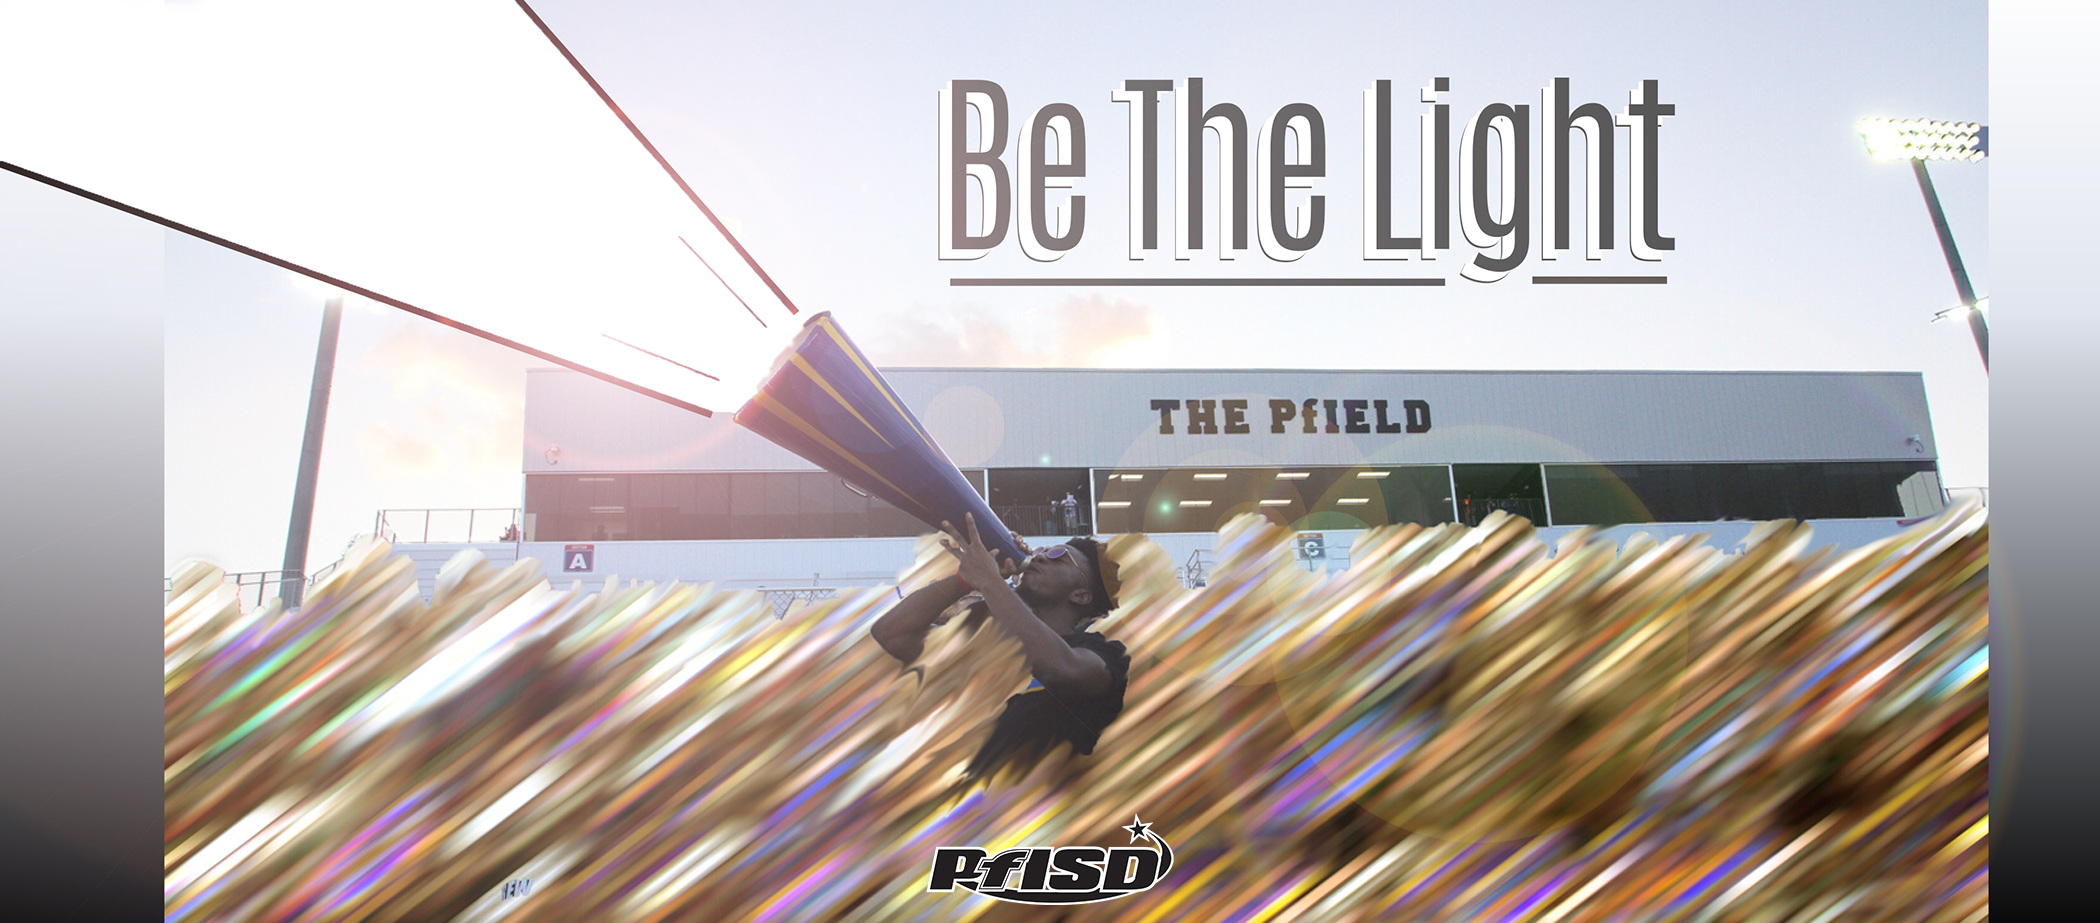 District to join Be The Light